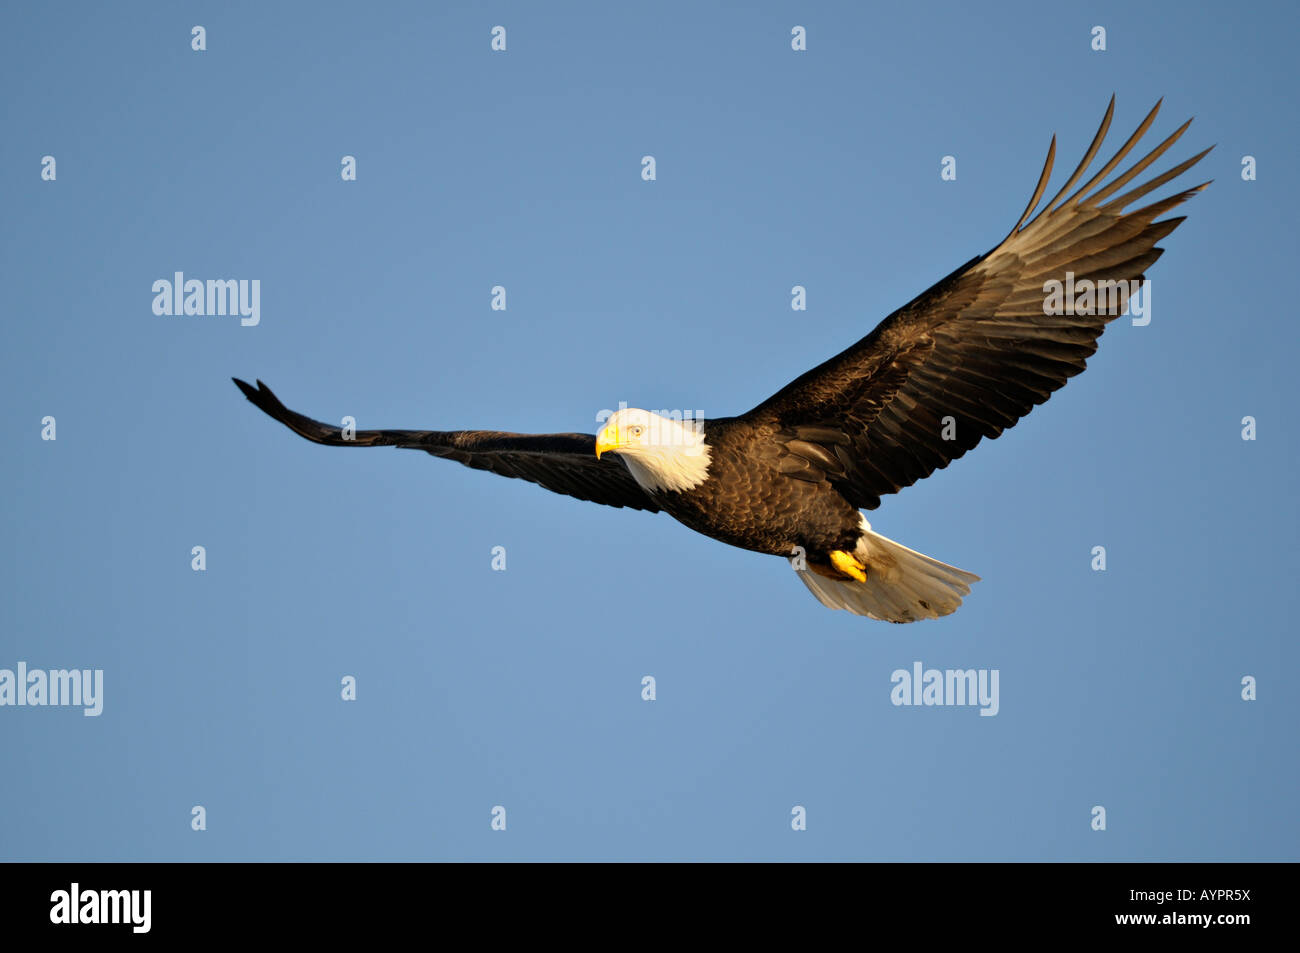 Bald Eagle (Haliaeetus leucocephalus) in flight, Kenai Peninsula, Alaska, USA - Stock Image